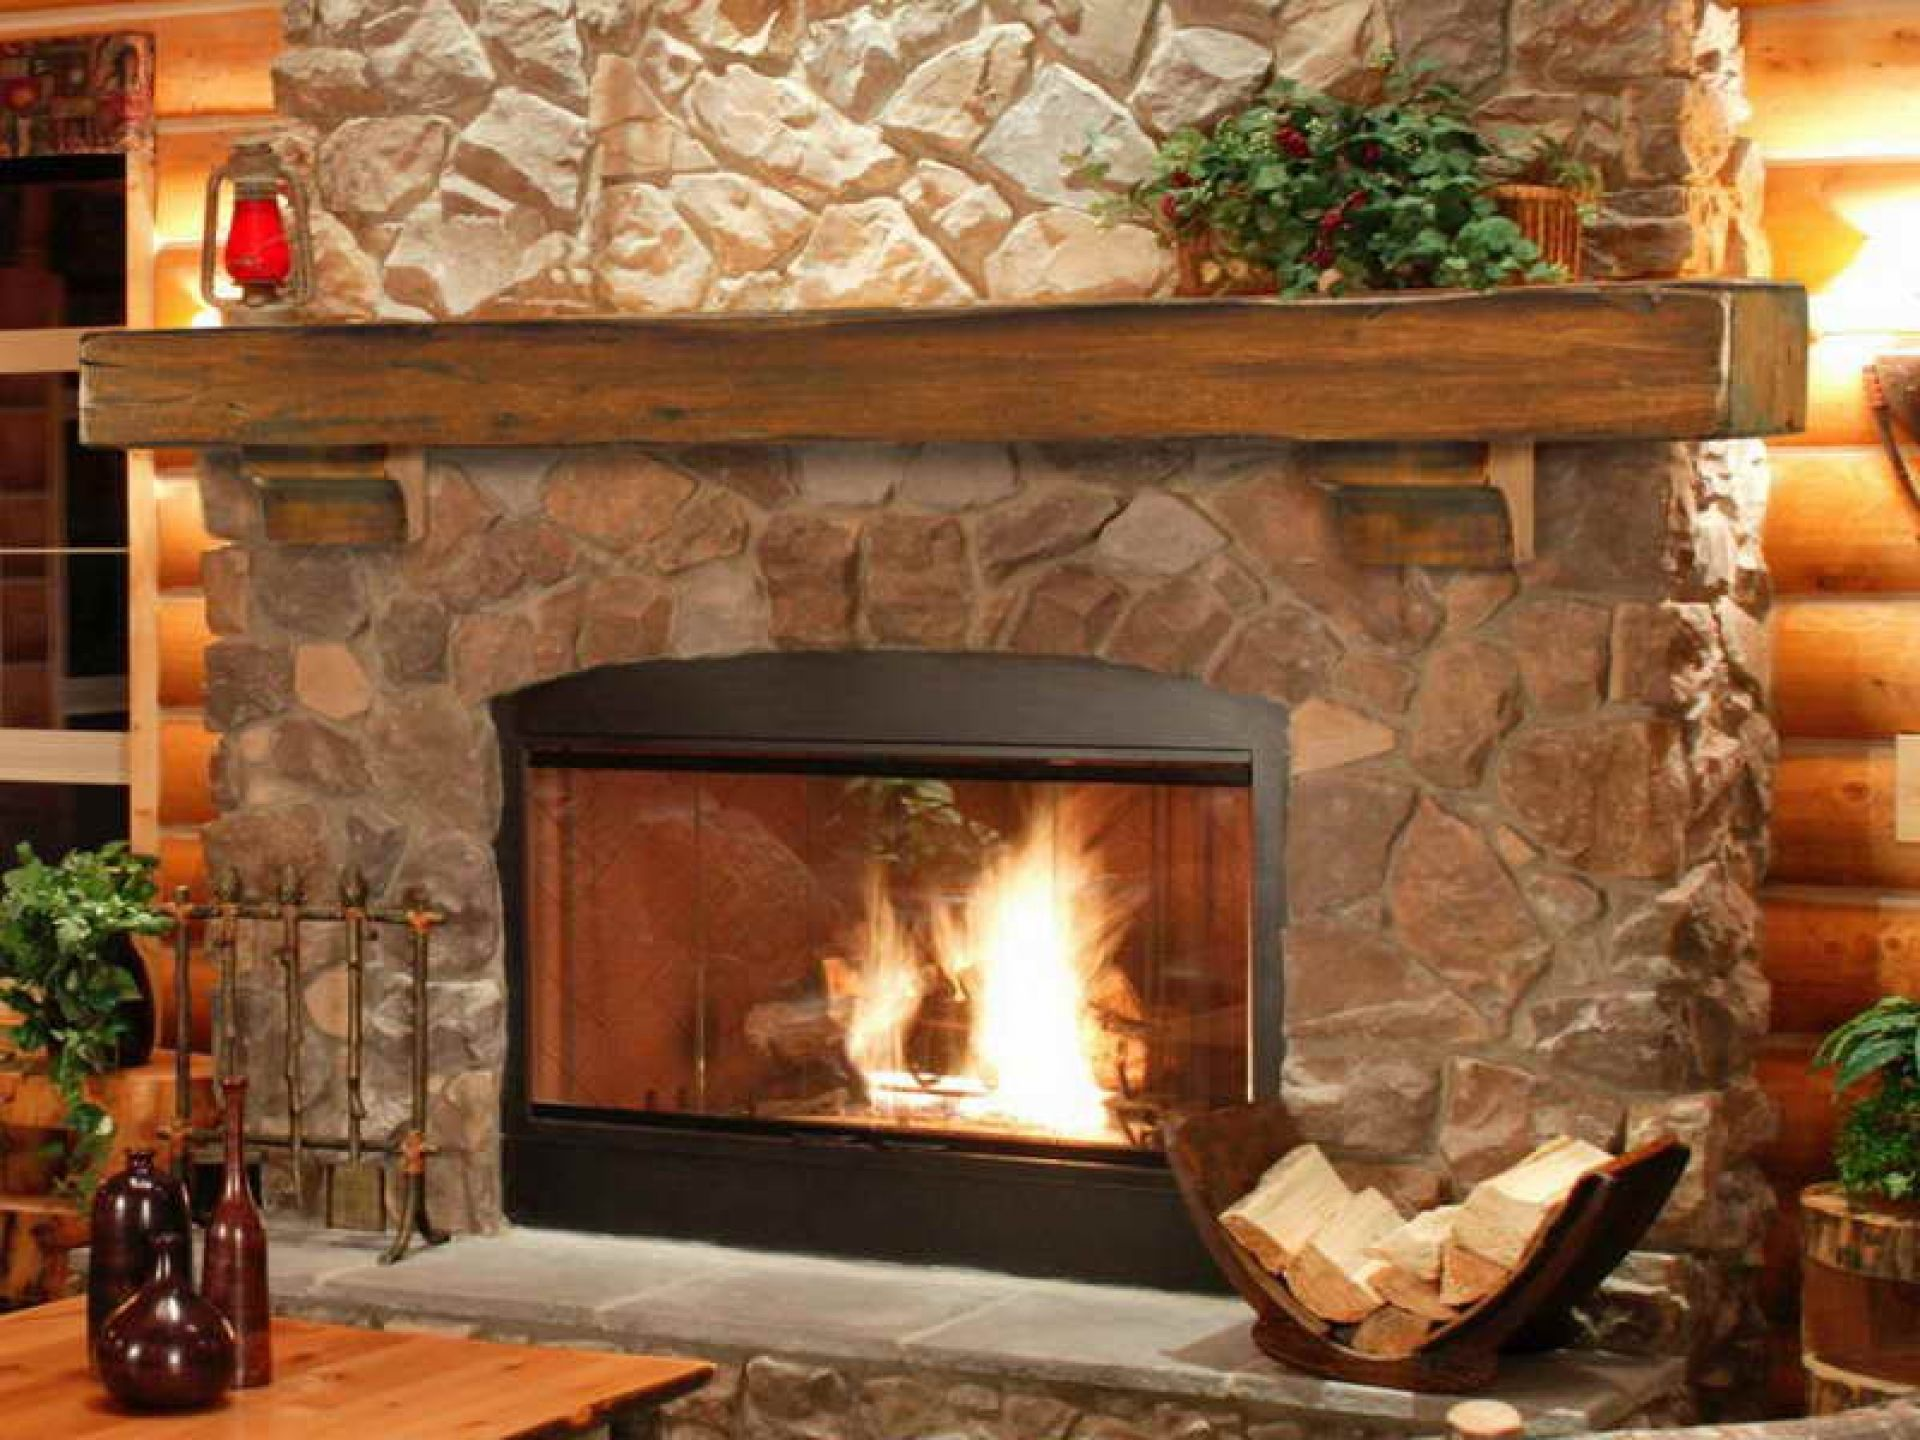 Cool stone fireplace mantels for interior design natural for Fire place mantel ideas